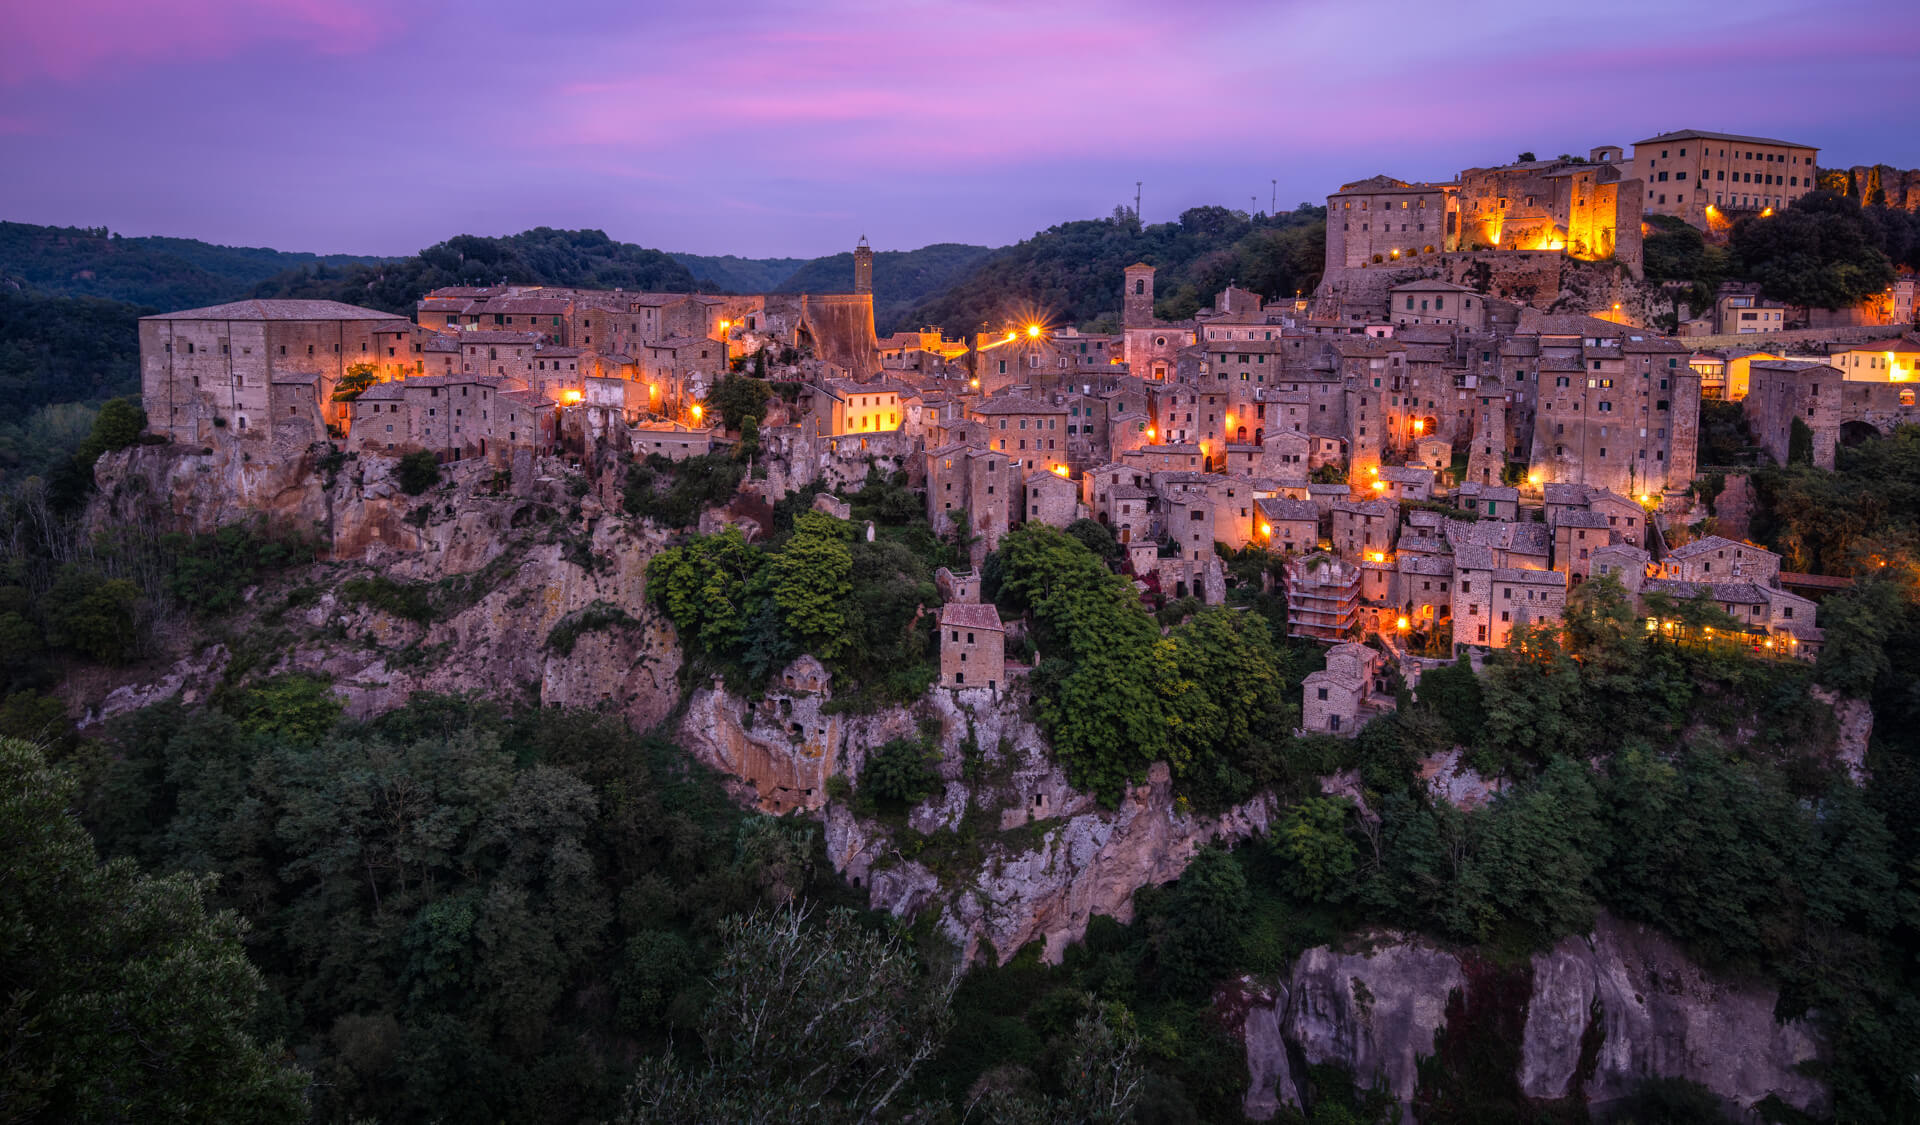 Pink sunset over the Italian village Sorano